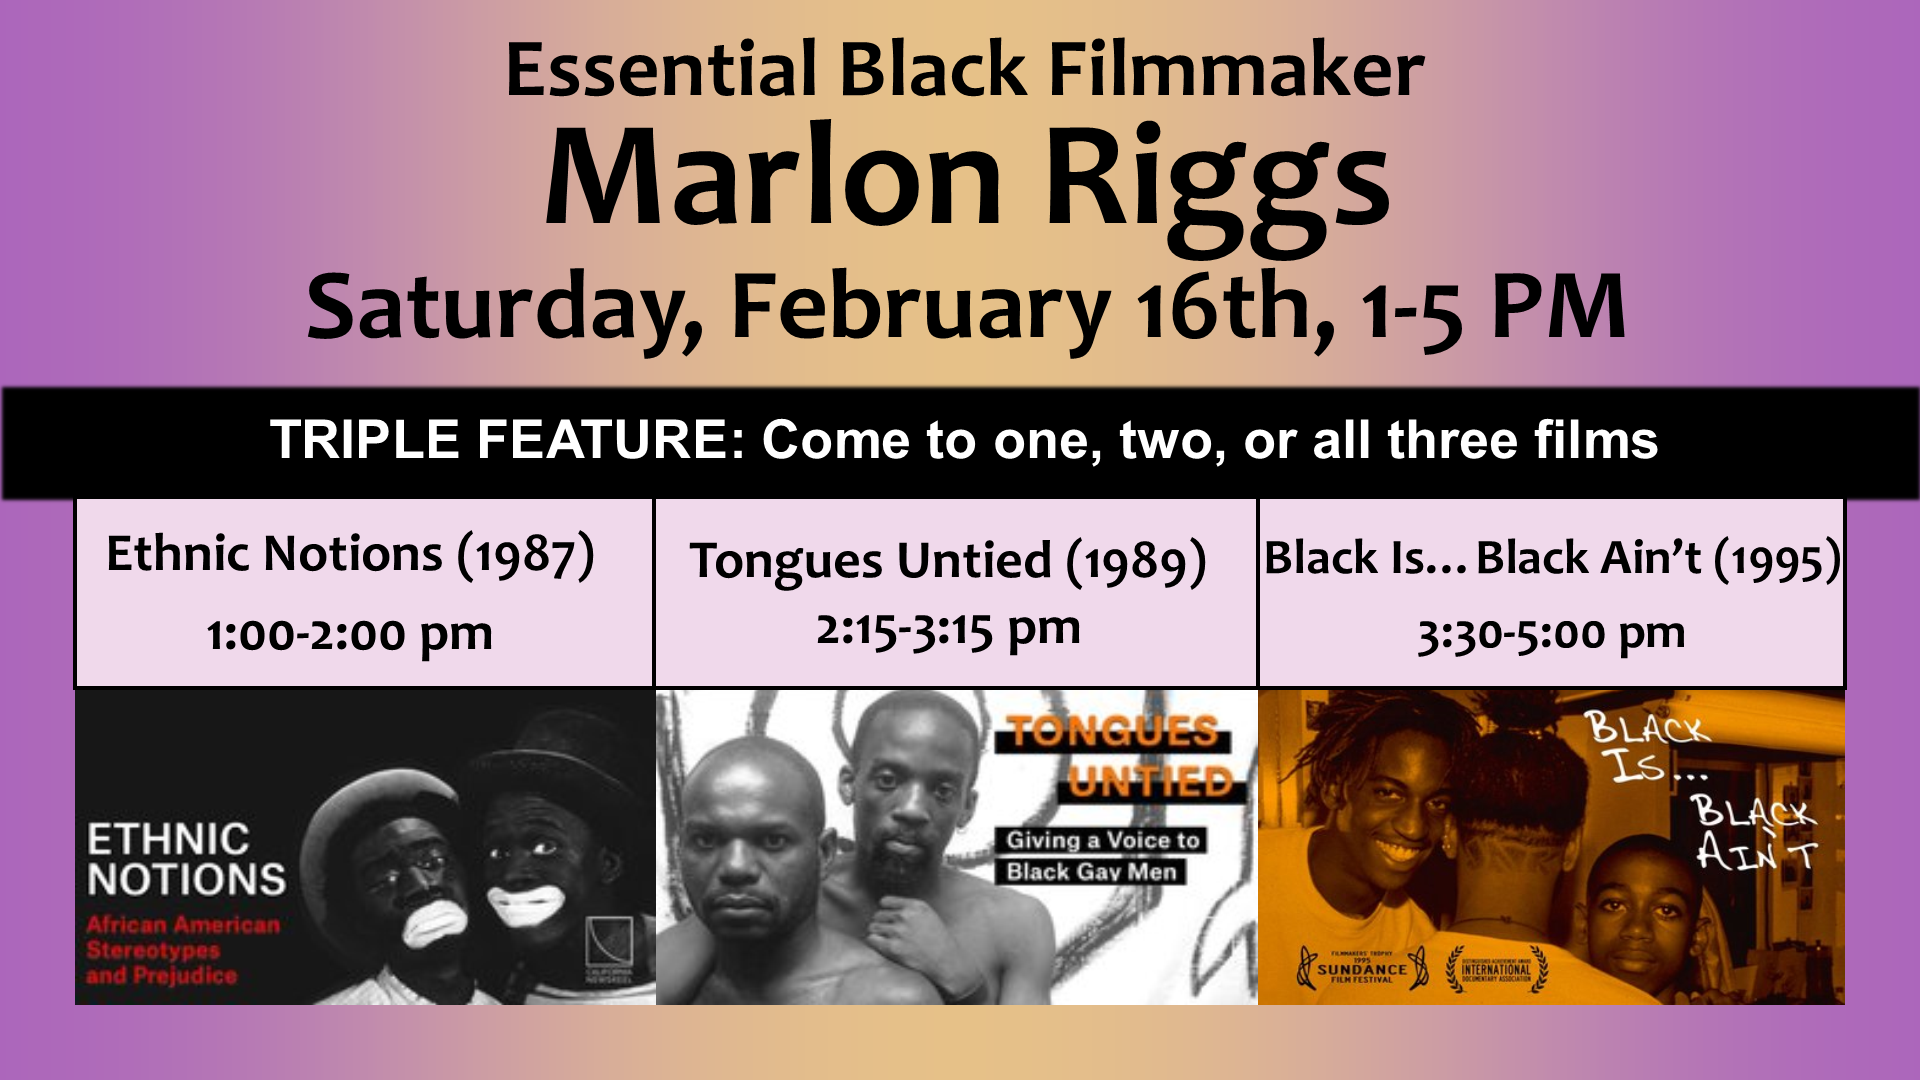 Essential Black Filmmaker Marlon Riggs: Triple Feature